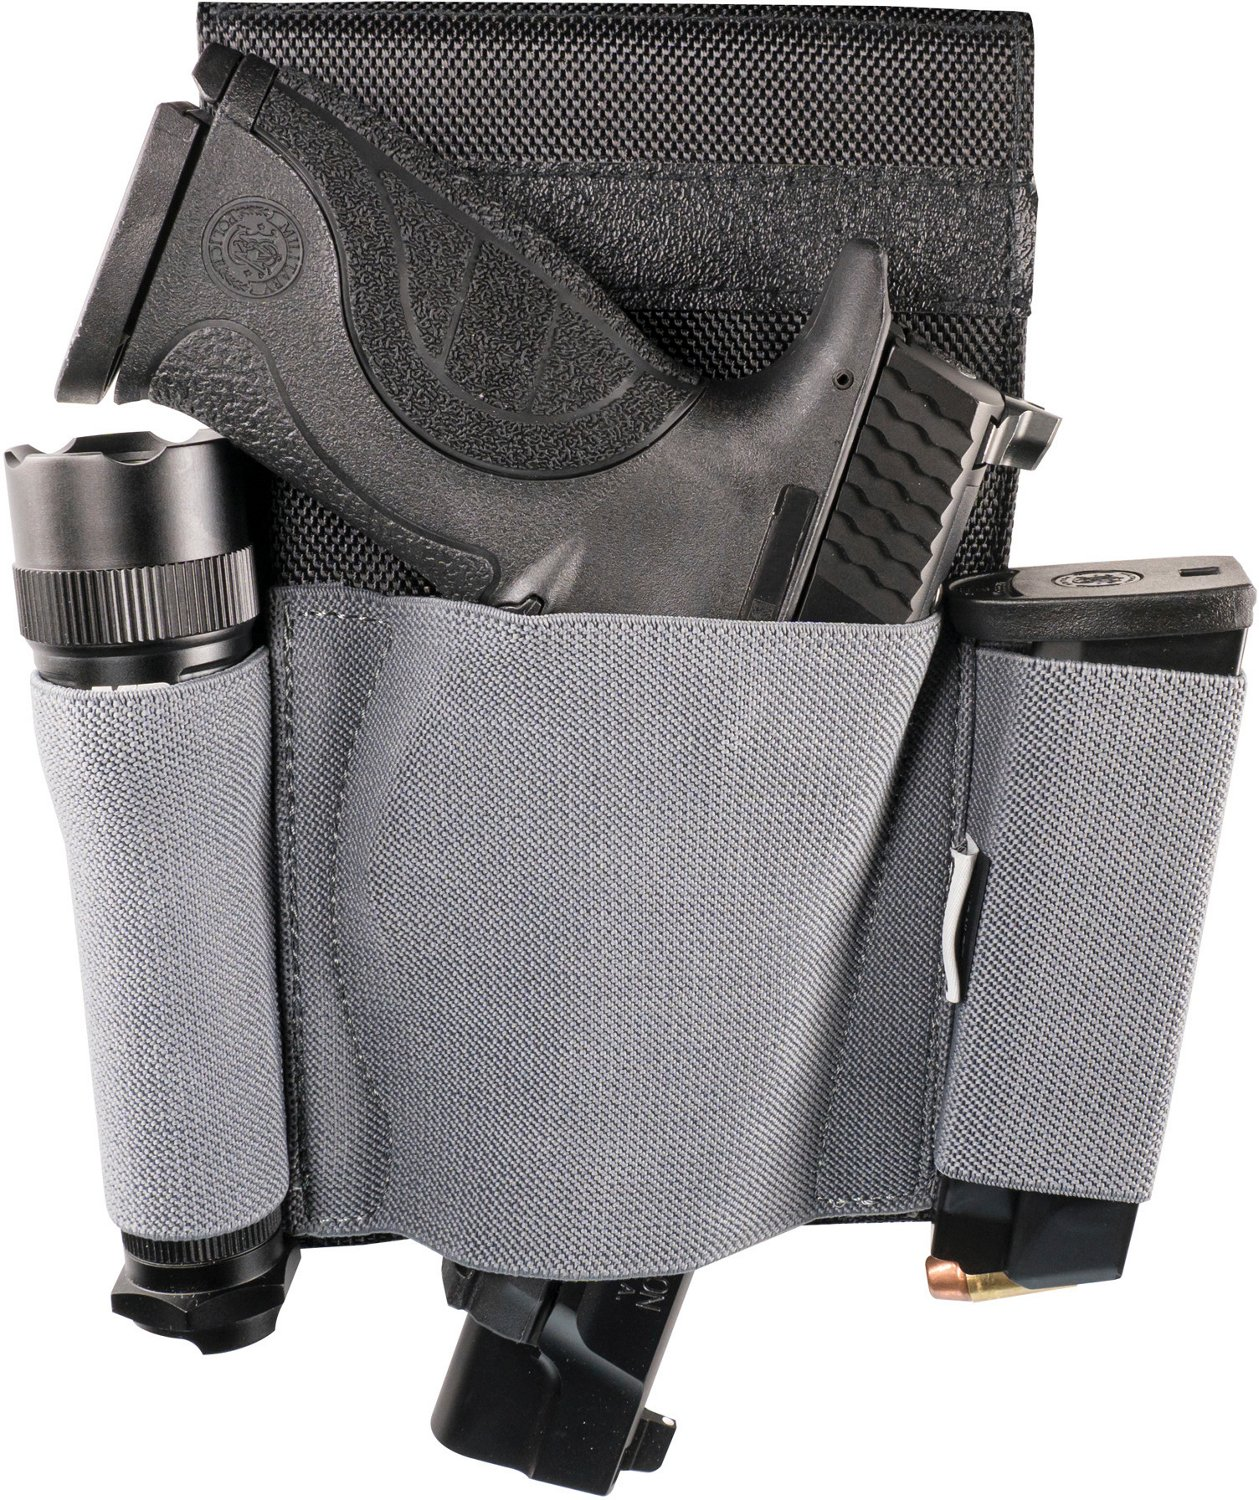 b819663f74 Display product reviews for Lockdown Night Guardian Low-Profile Bedside  Holster